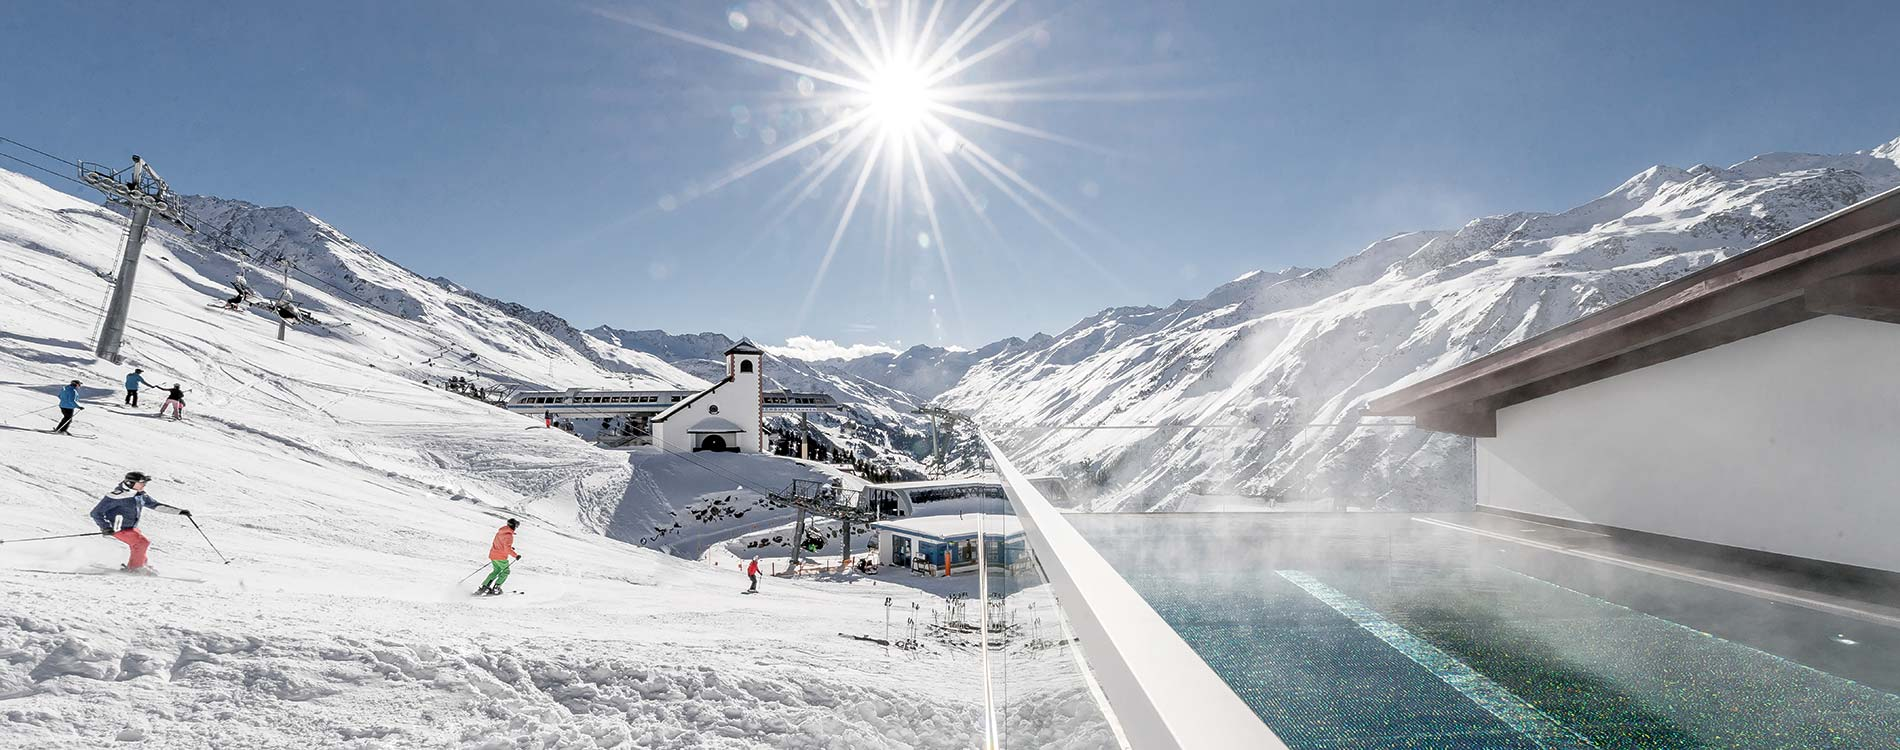 5-star superior ski and spa holiday in Obergurgl-Hochgurgl Austria